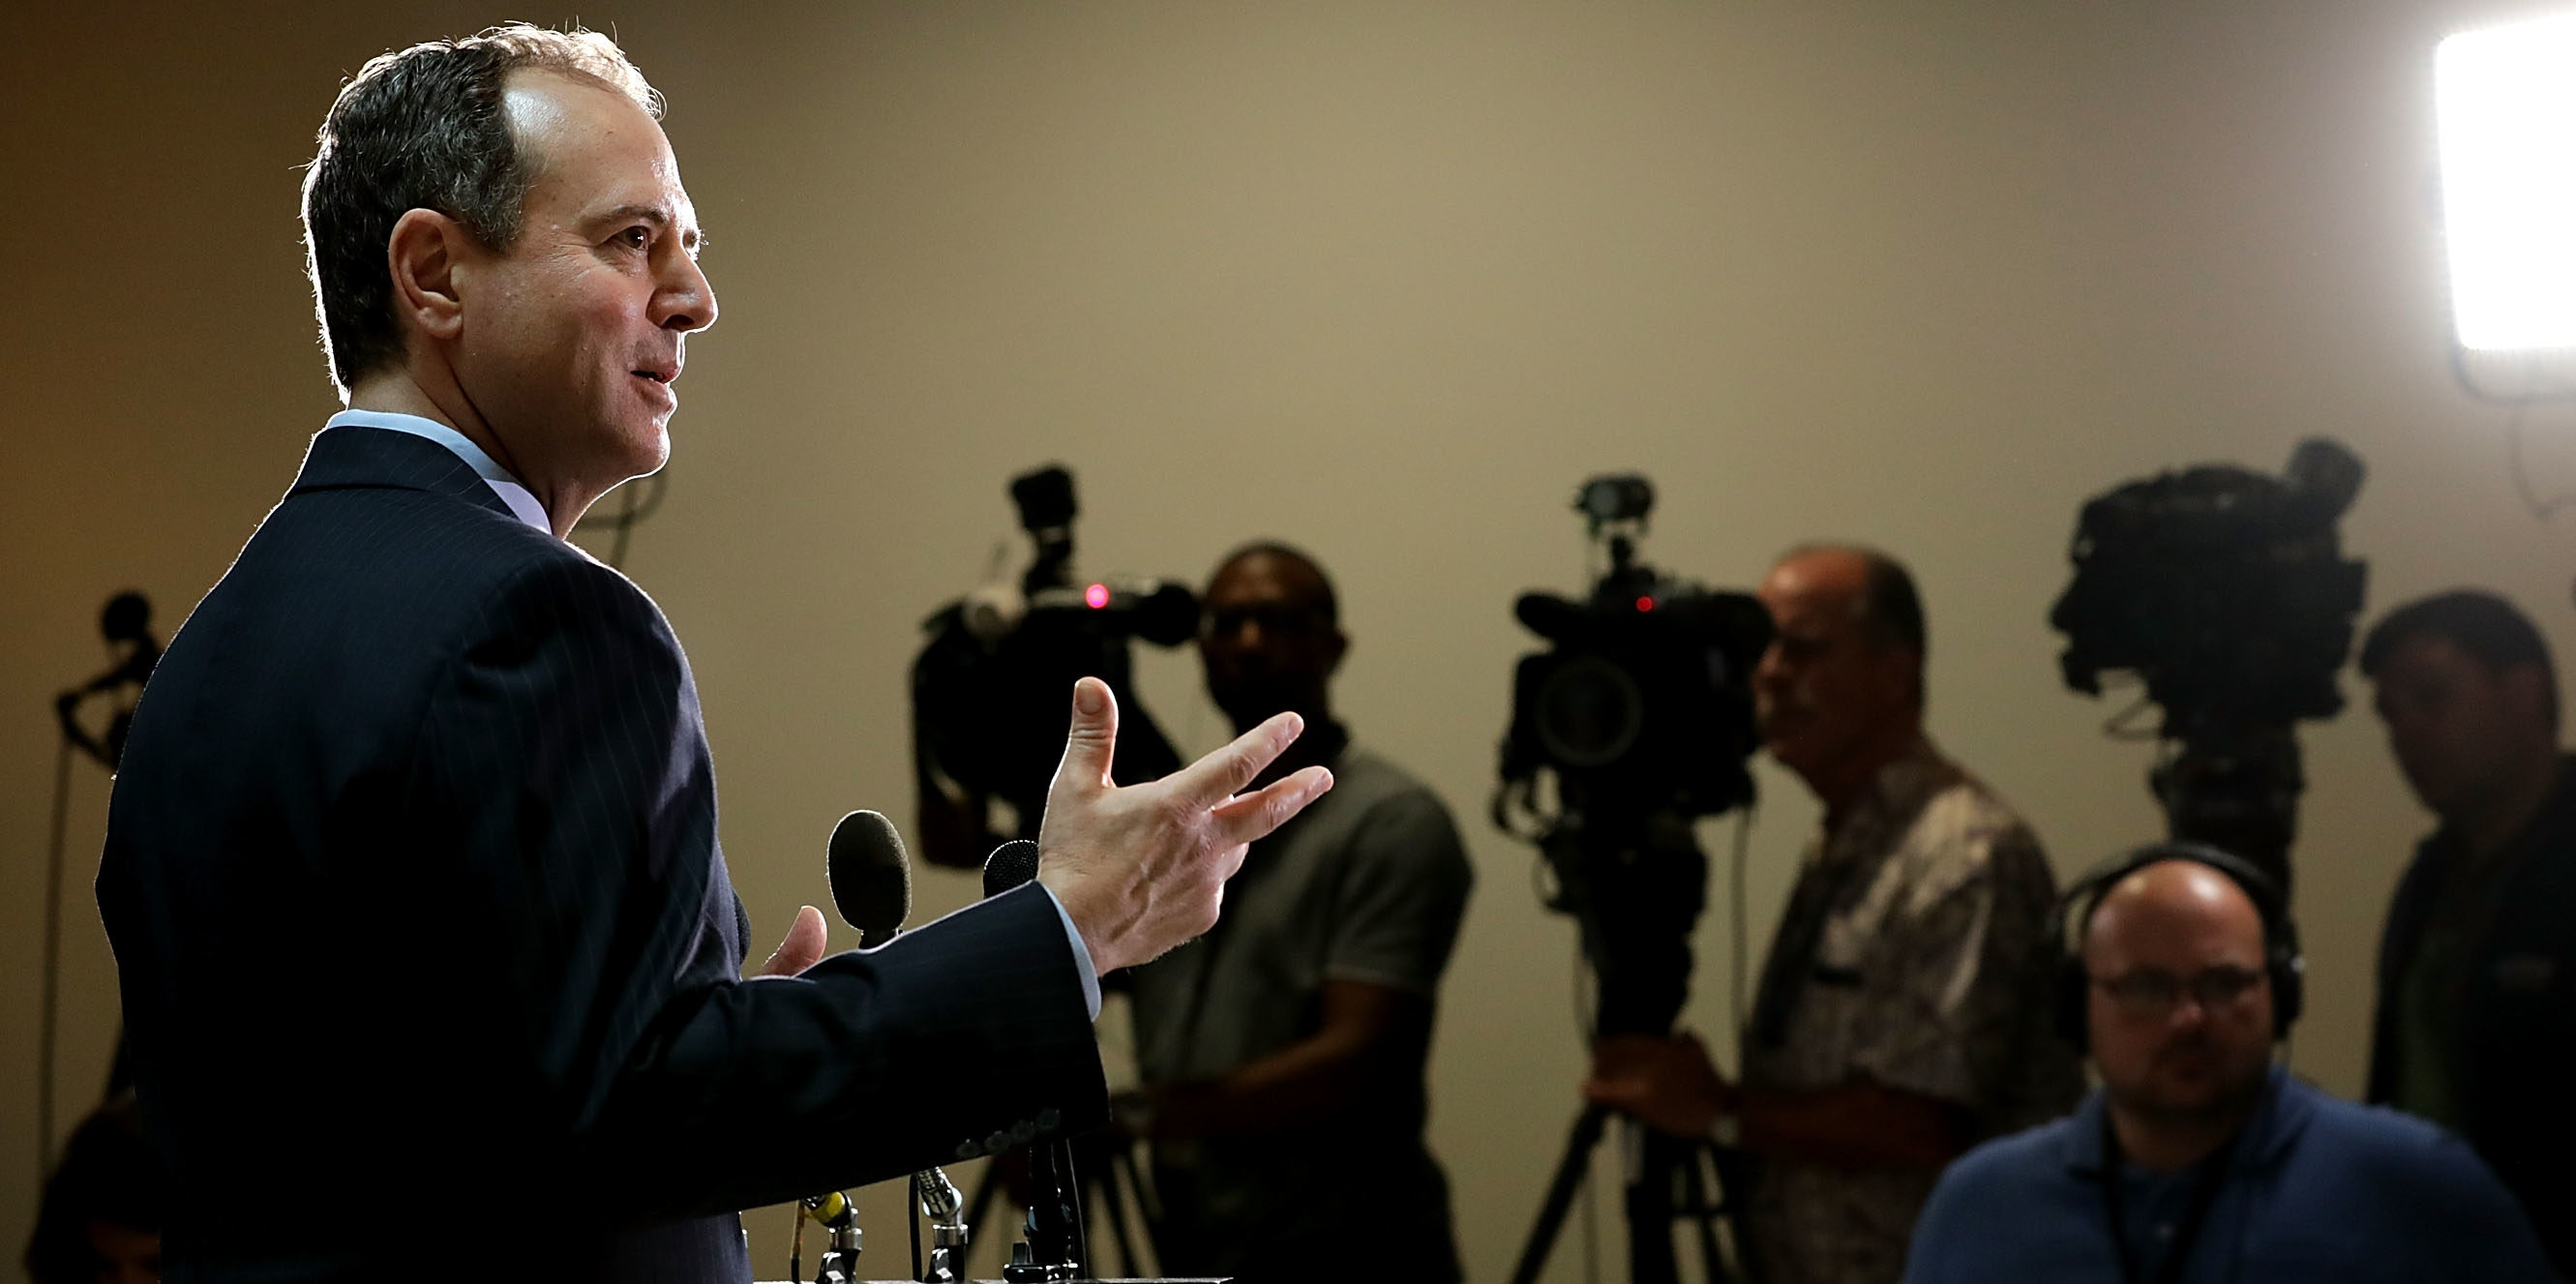 House Intelligence Committee ranking member Rep. Adam Schiff (D-CA) speaks to reporters about the recent disclosure of a meeting between Donald Trump, Jr. and a Russian lawyer during the presidential campaign in the Capitol Visitors Center July 11, 2017 in Washington, DC. (Photo by Chip Somodevilla/Getty Images)